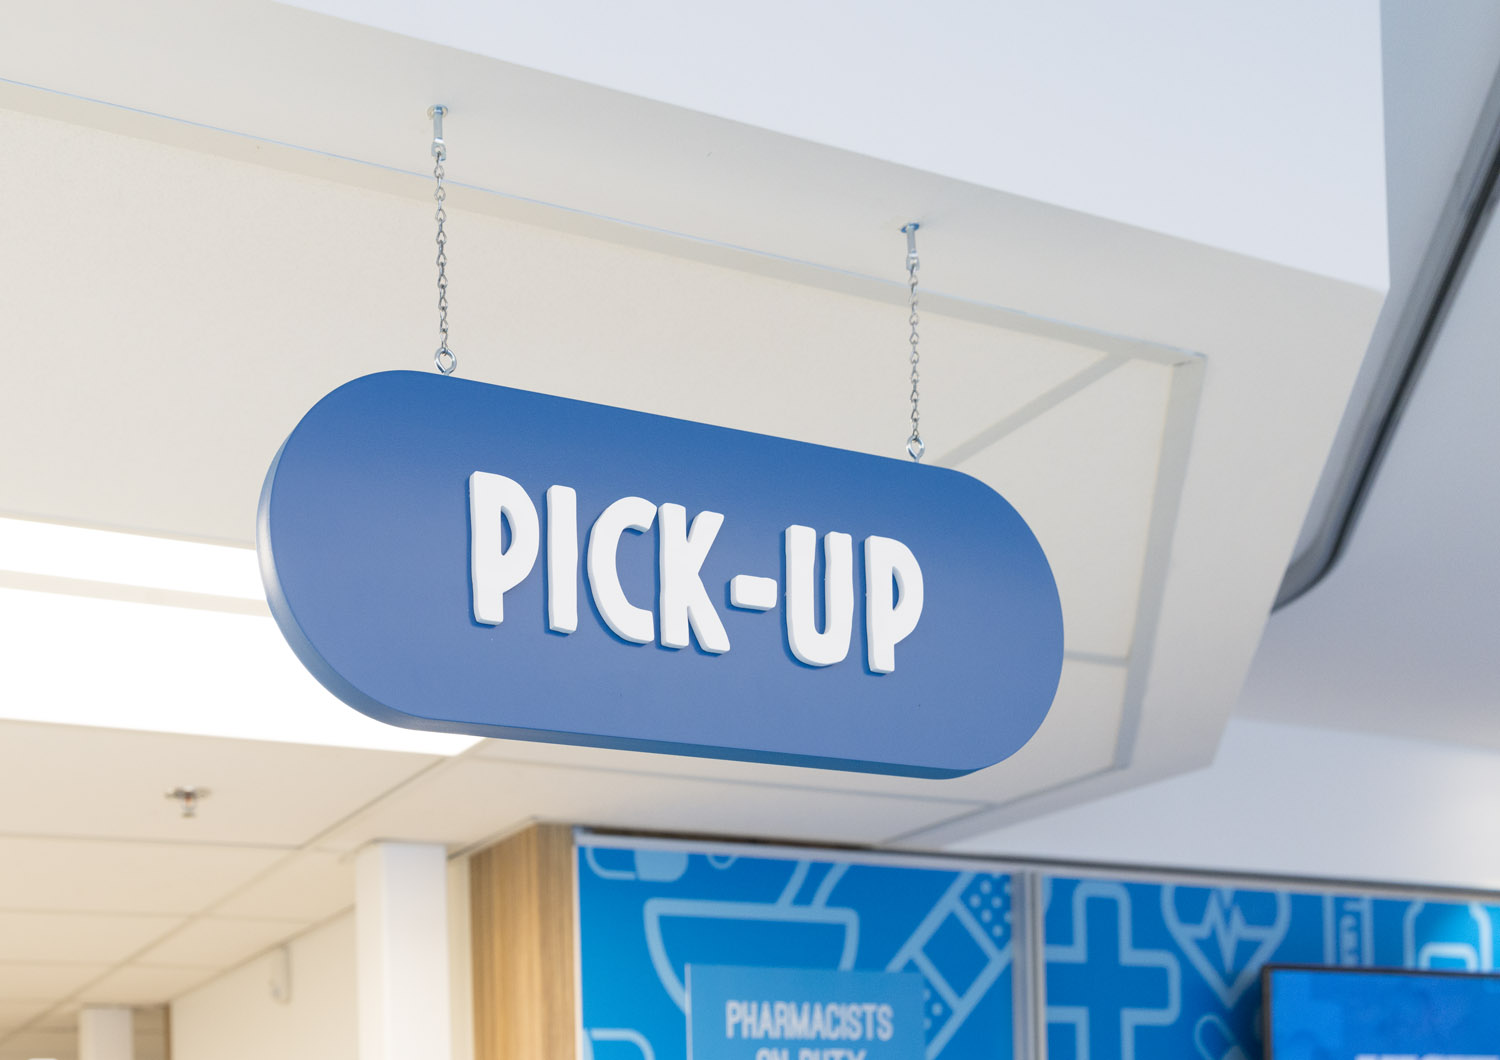 Pharmacy Directional Signs